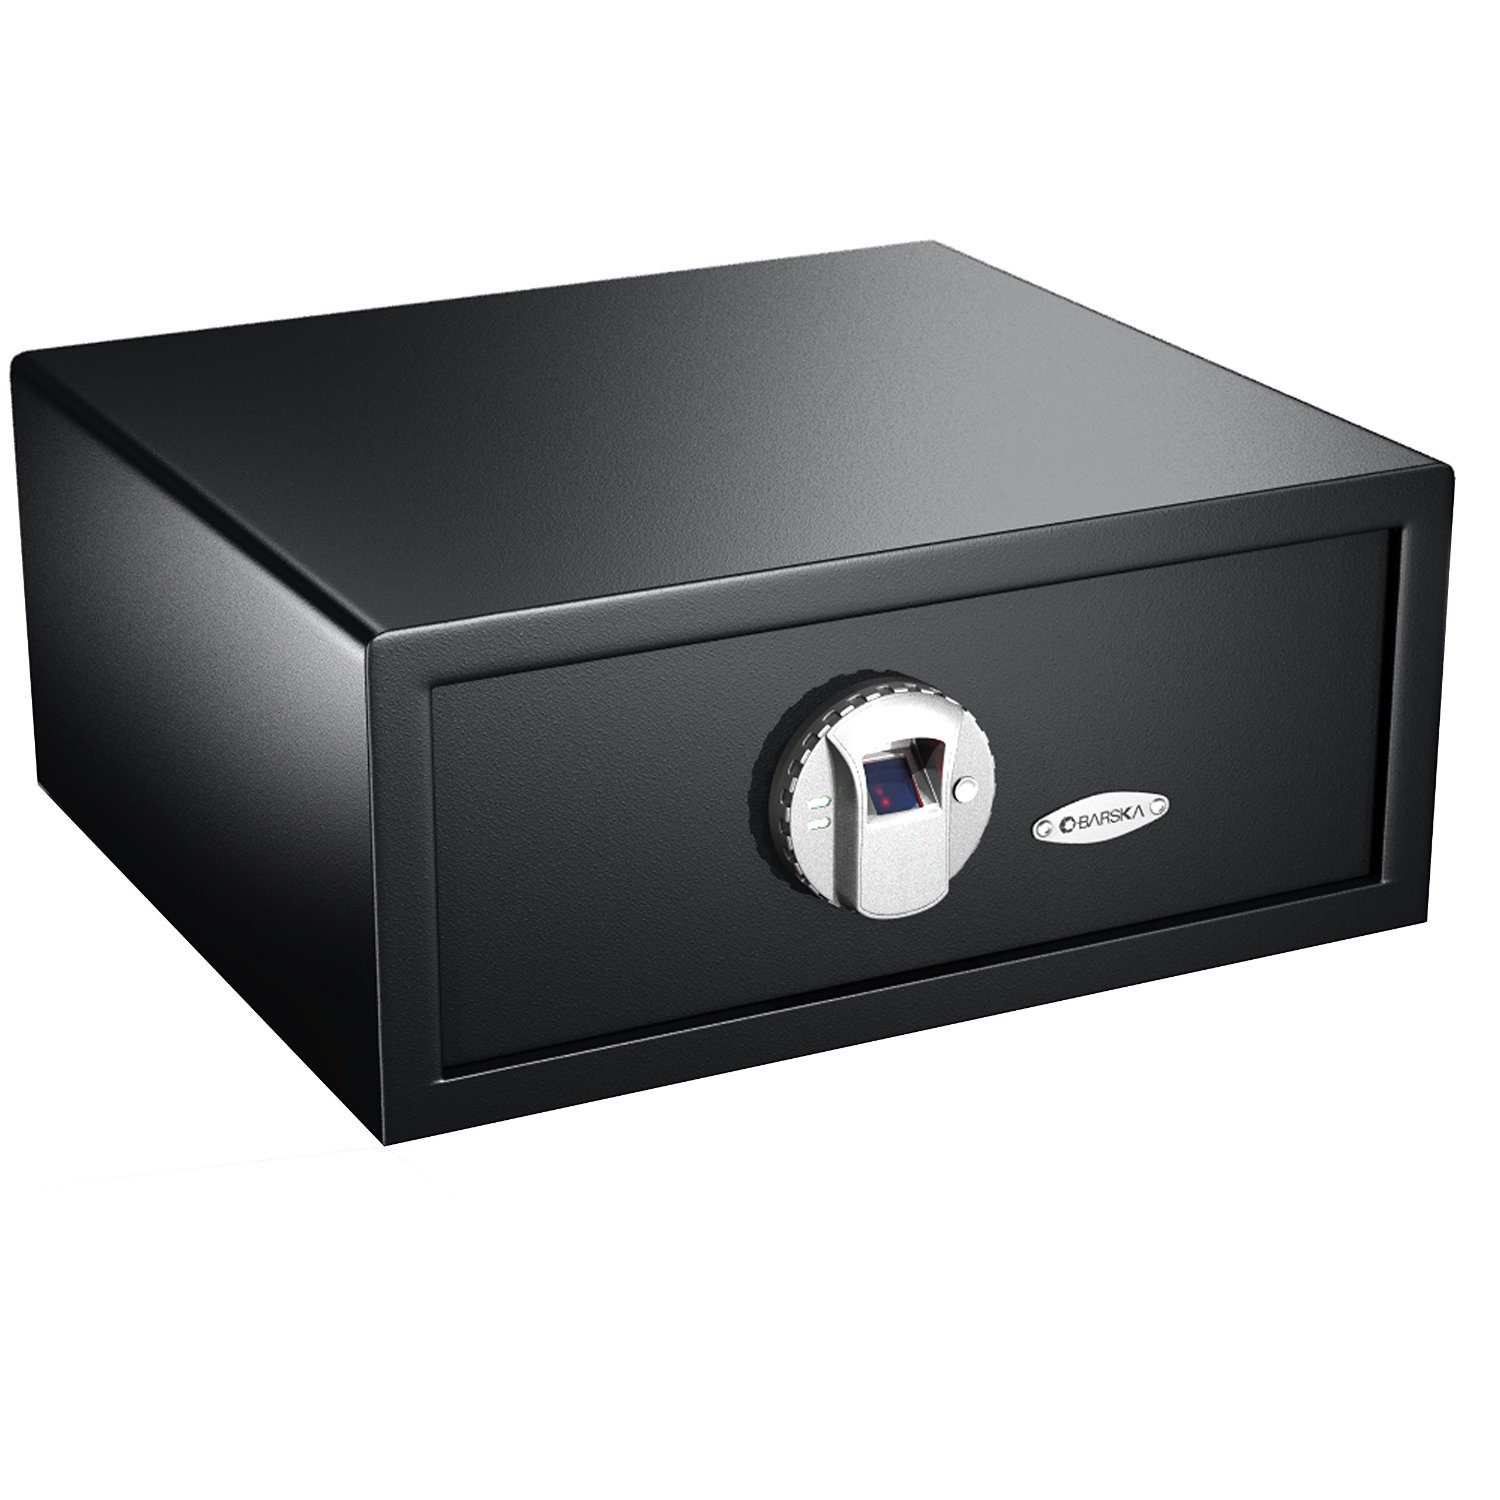 fingerprint gun safe reviews